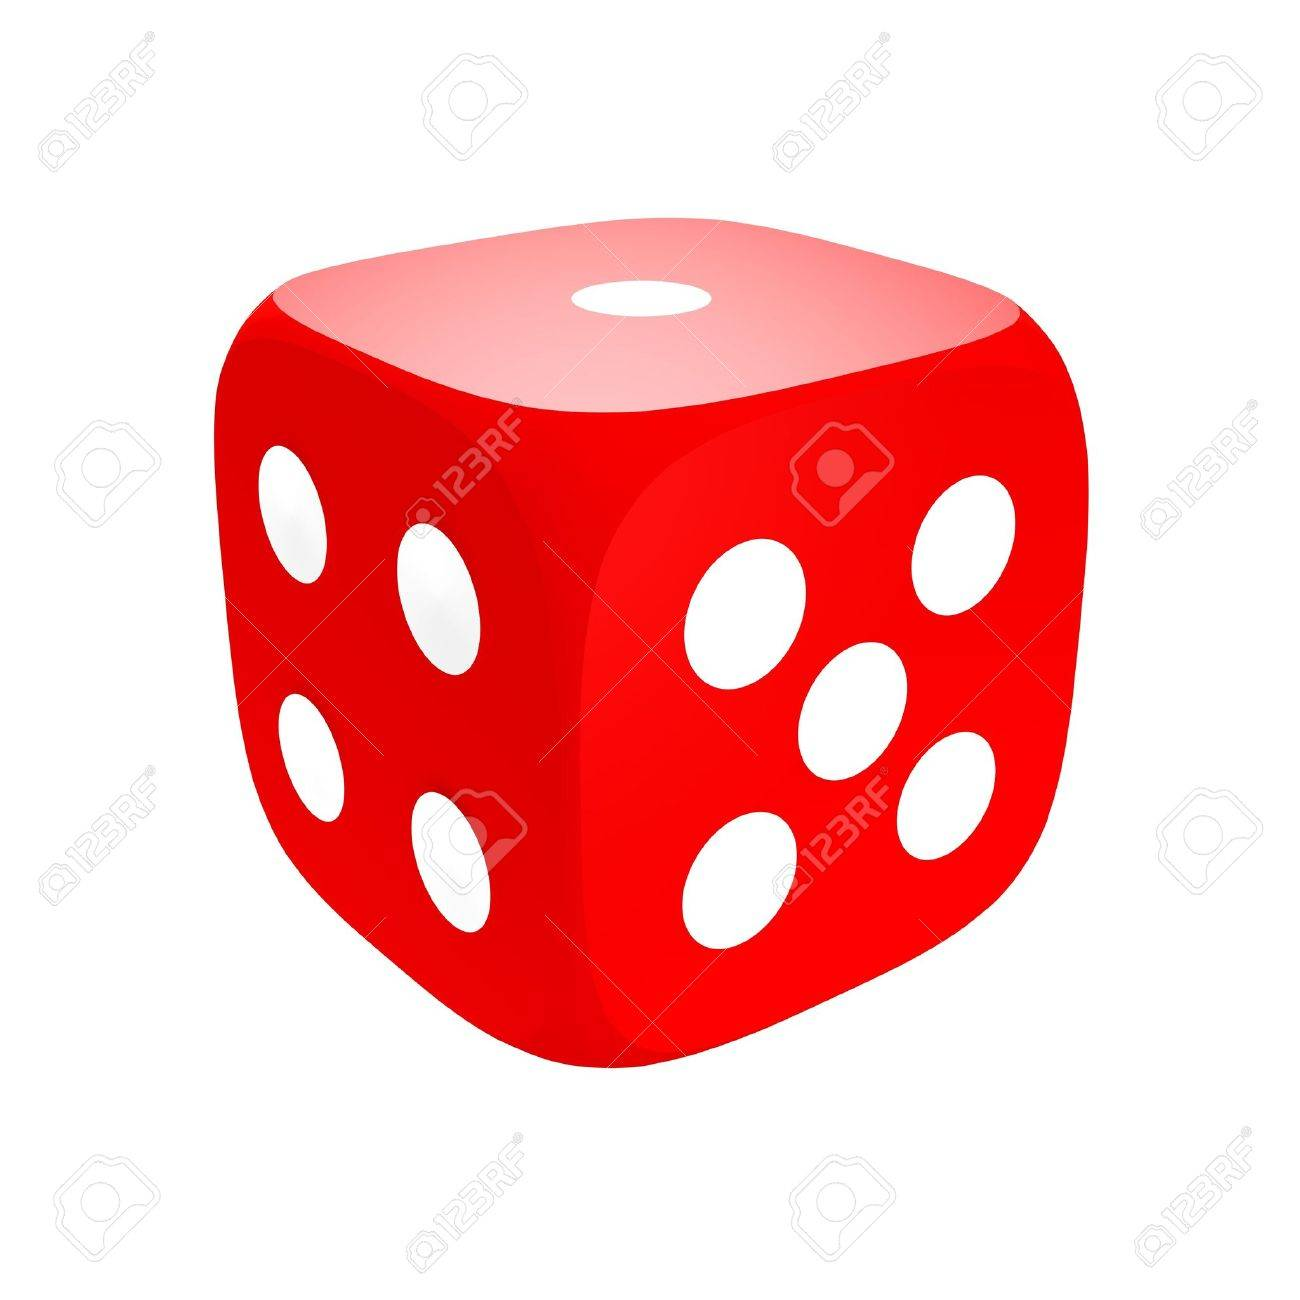 Red dice isolated on white. 3d rendered illustration. Stock Illustration - 4820820